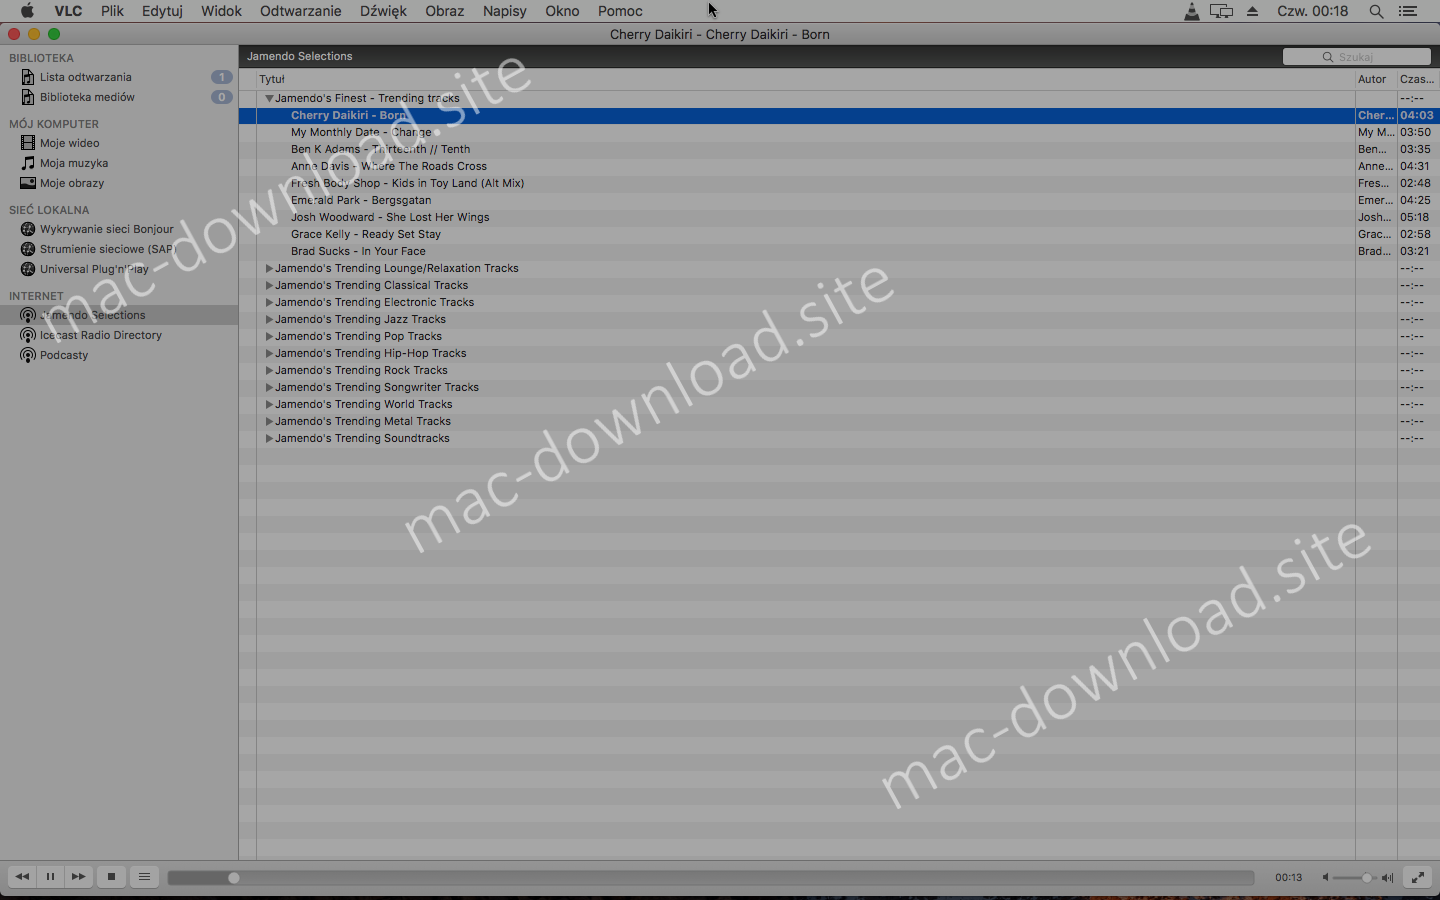 Download VLC media player (Mac) 3 0 4 for free from mac-download site